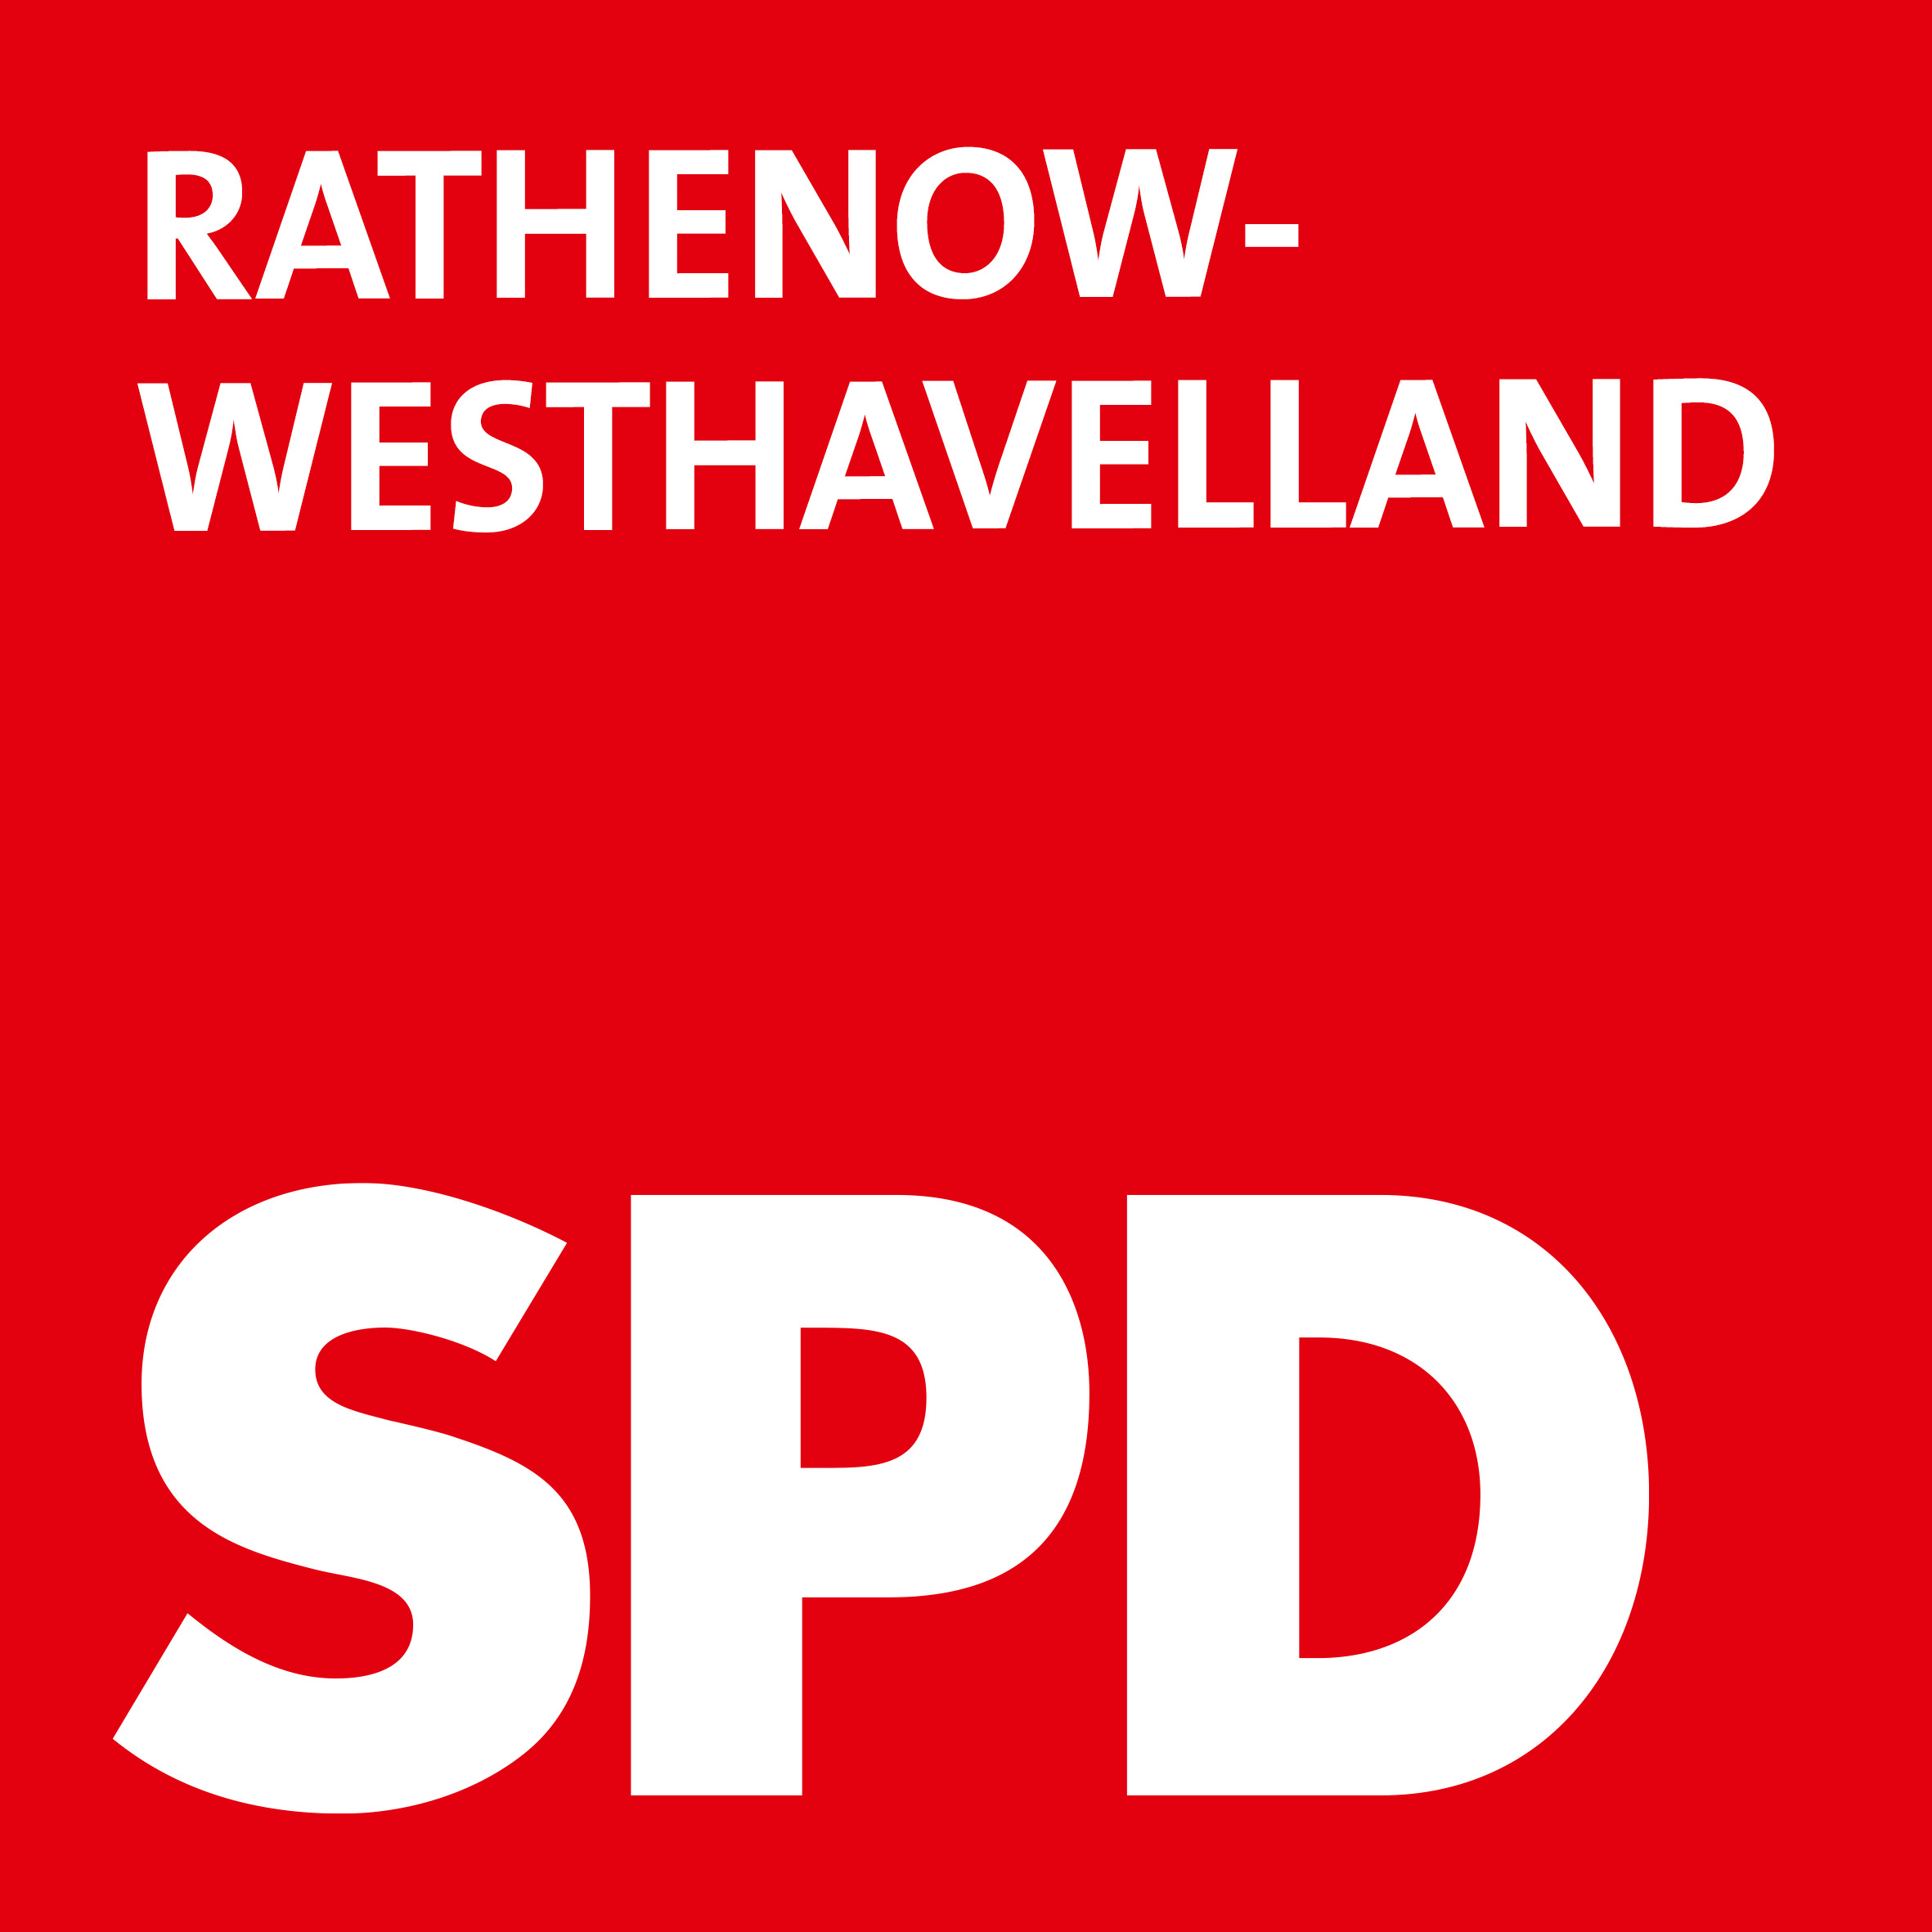 SPD Rathenow-Westhavelland